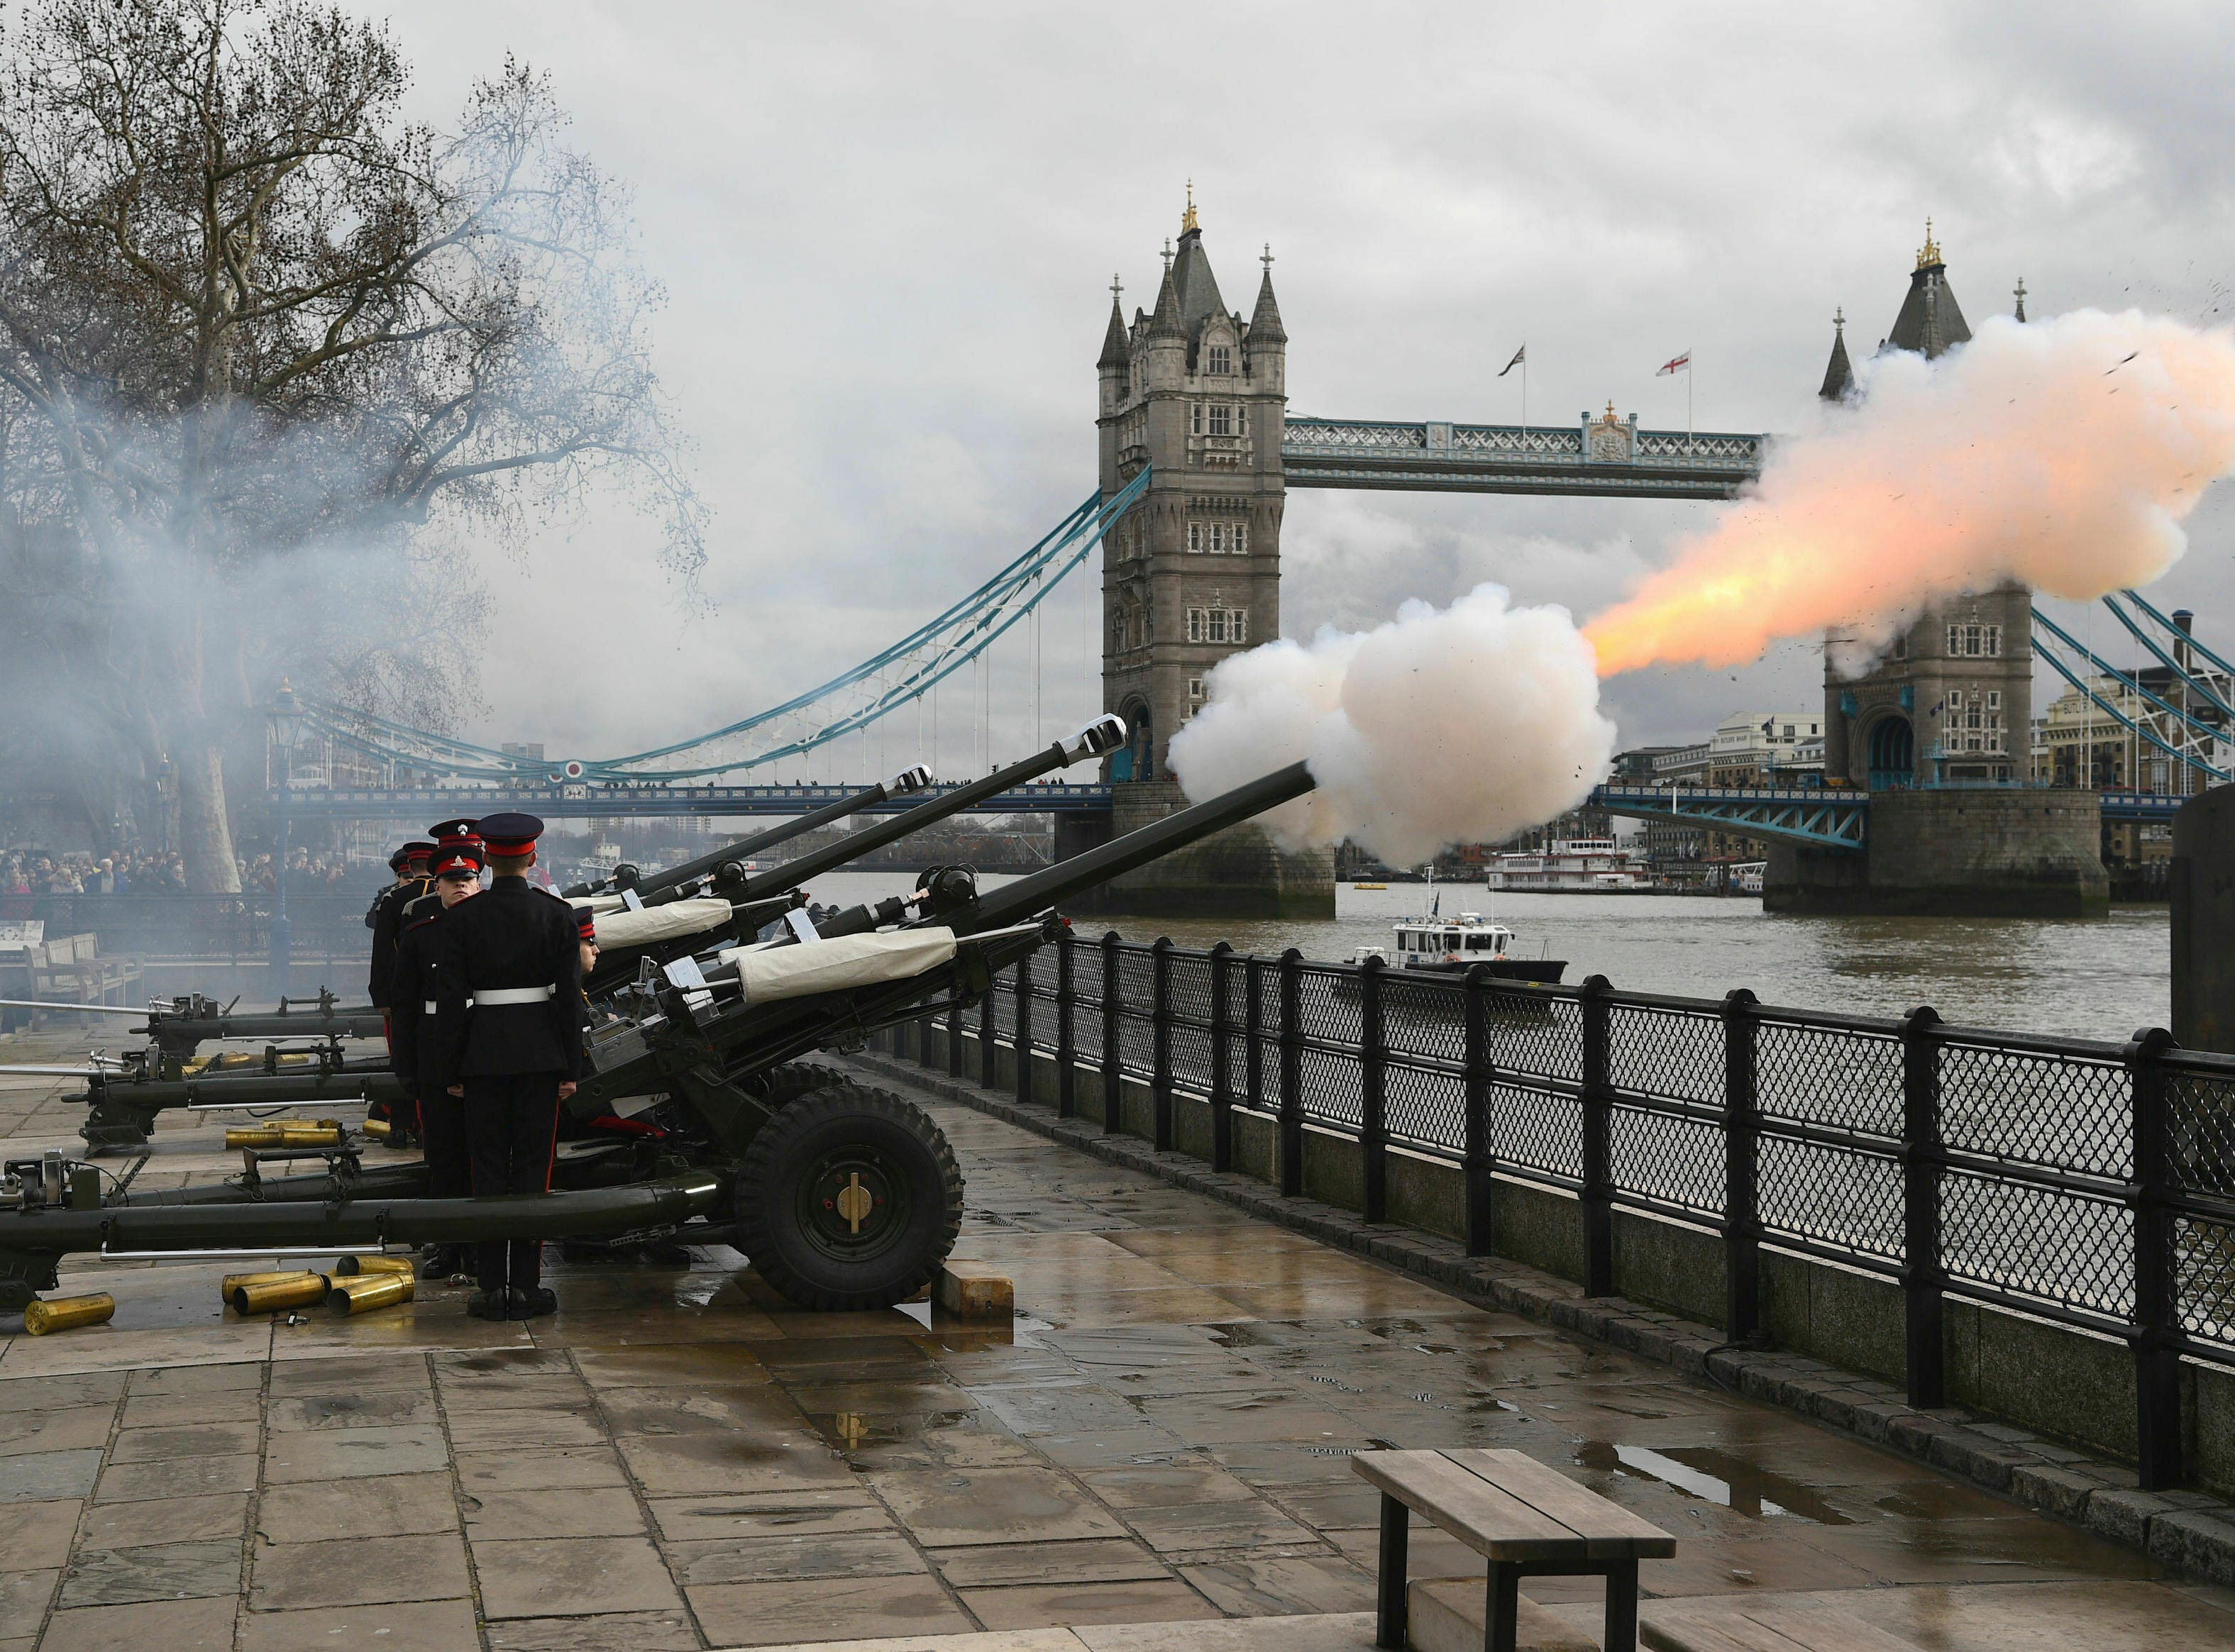 Members of the Honourable Artillery Company fire a 62-round gun salute from the wharf at the Tower of London, with Tower Bridge in background, to mark the anniversary of the succession of Queen Elizabeth II to the throne, Wednesday Feb. 6, 2019.  Princess Elizabeth acceded to the throne Feb. 6, 1952, on the death of her father King George VI.